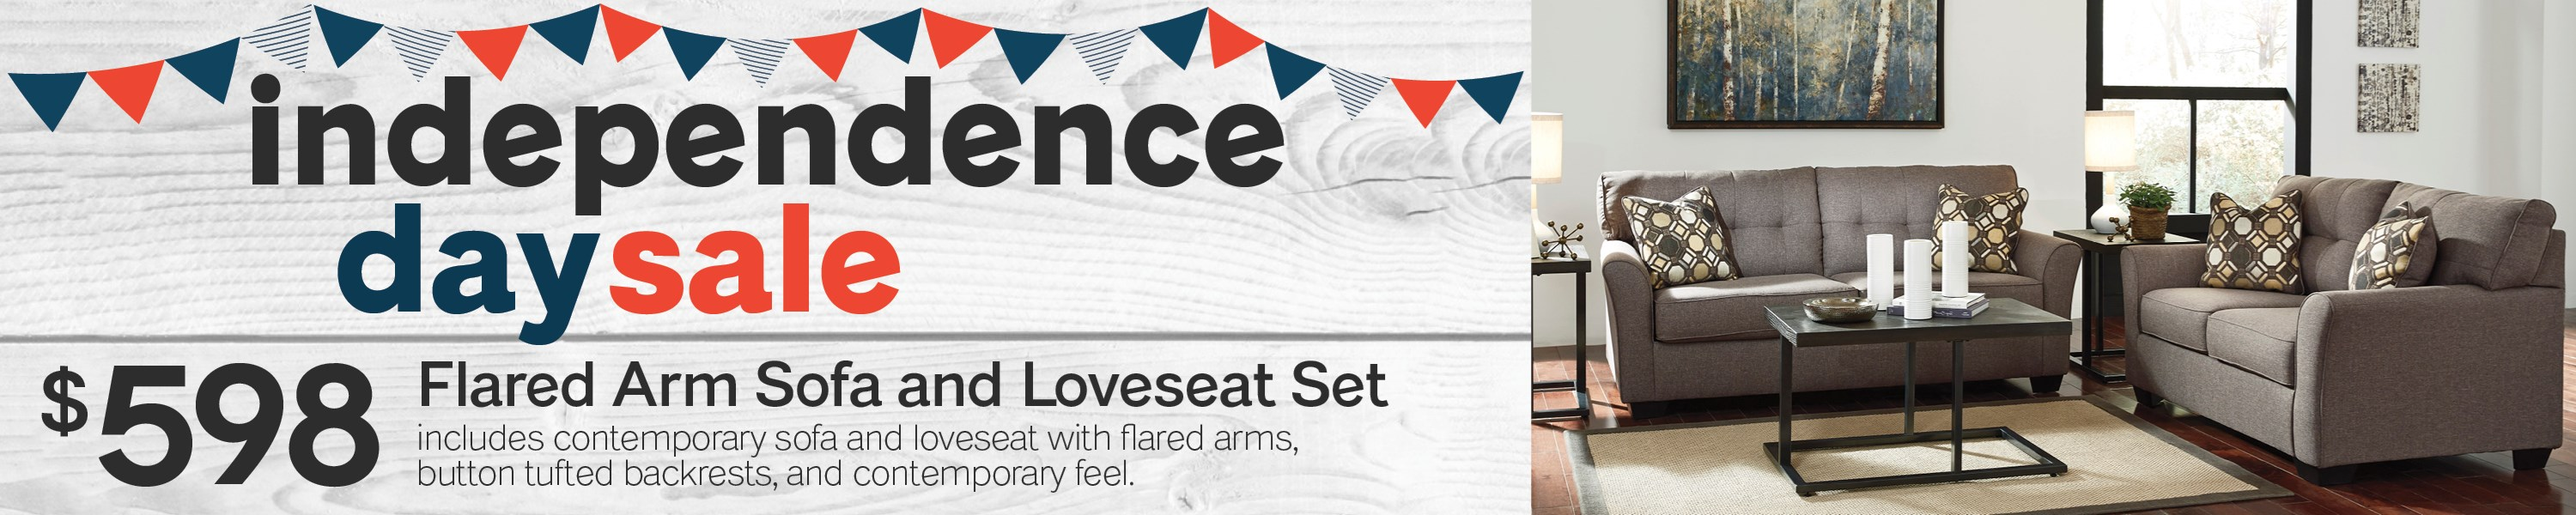 Furniture & ApplianceMart Independence Day Sale